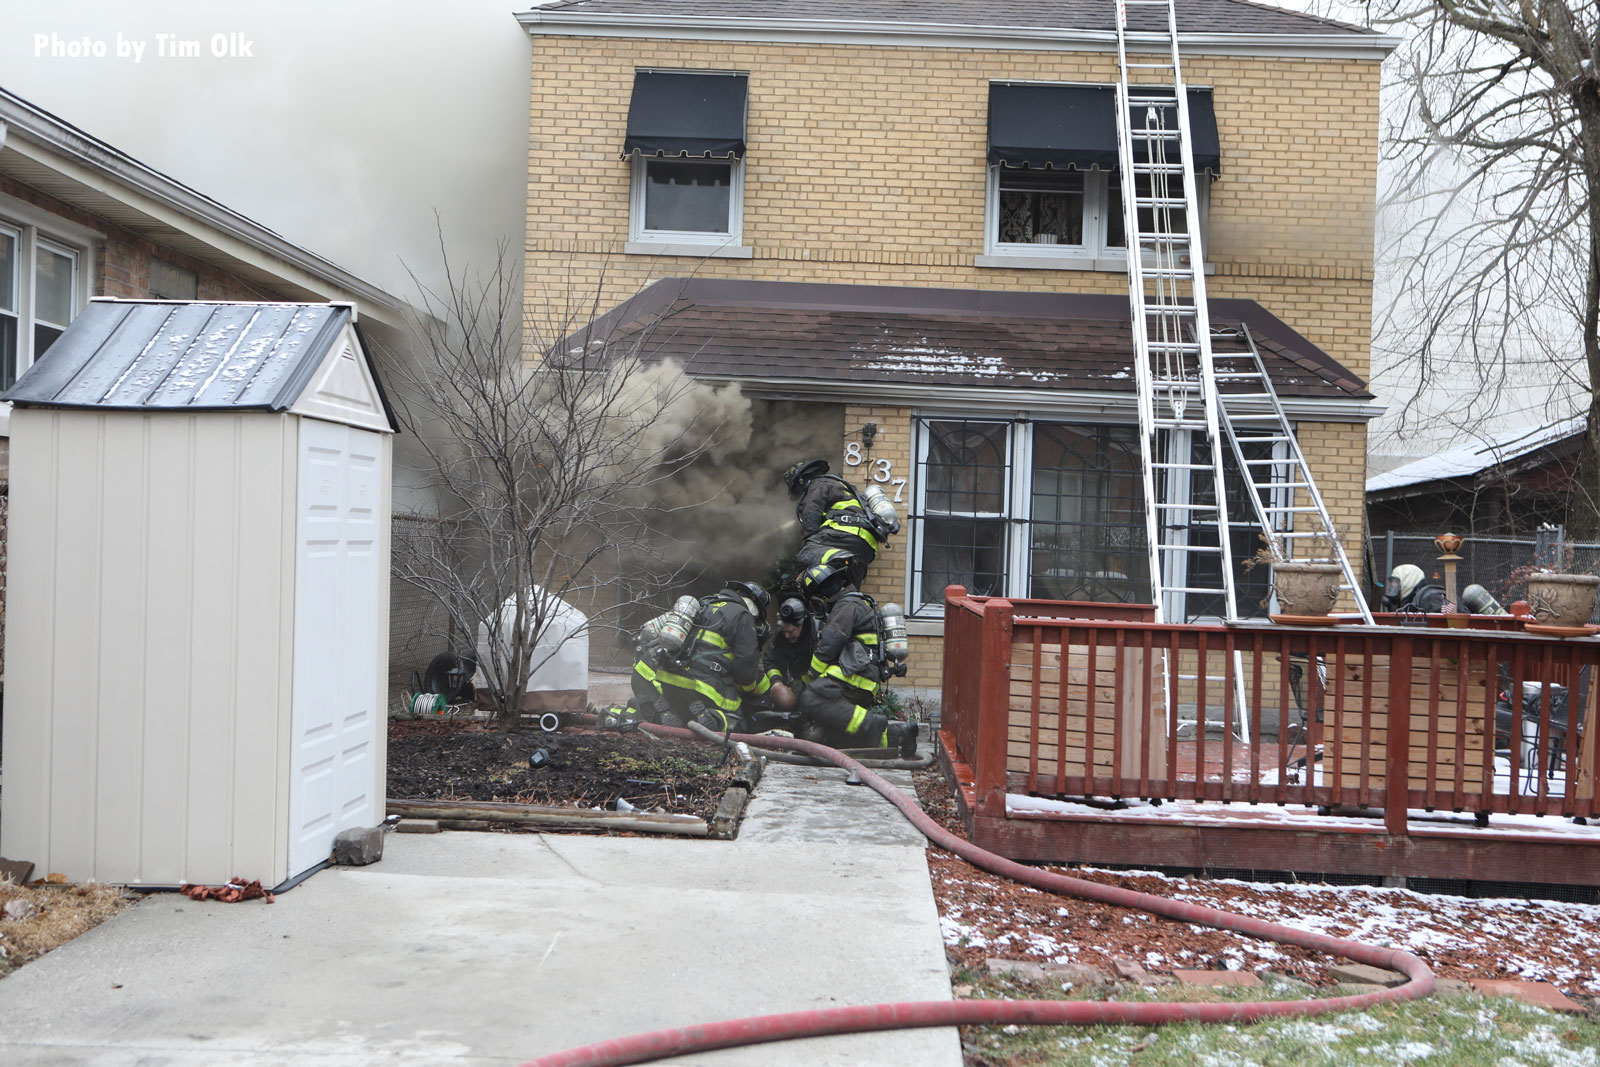 Chicago firefighters work on a down member